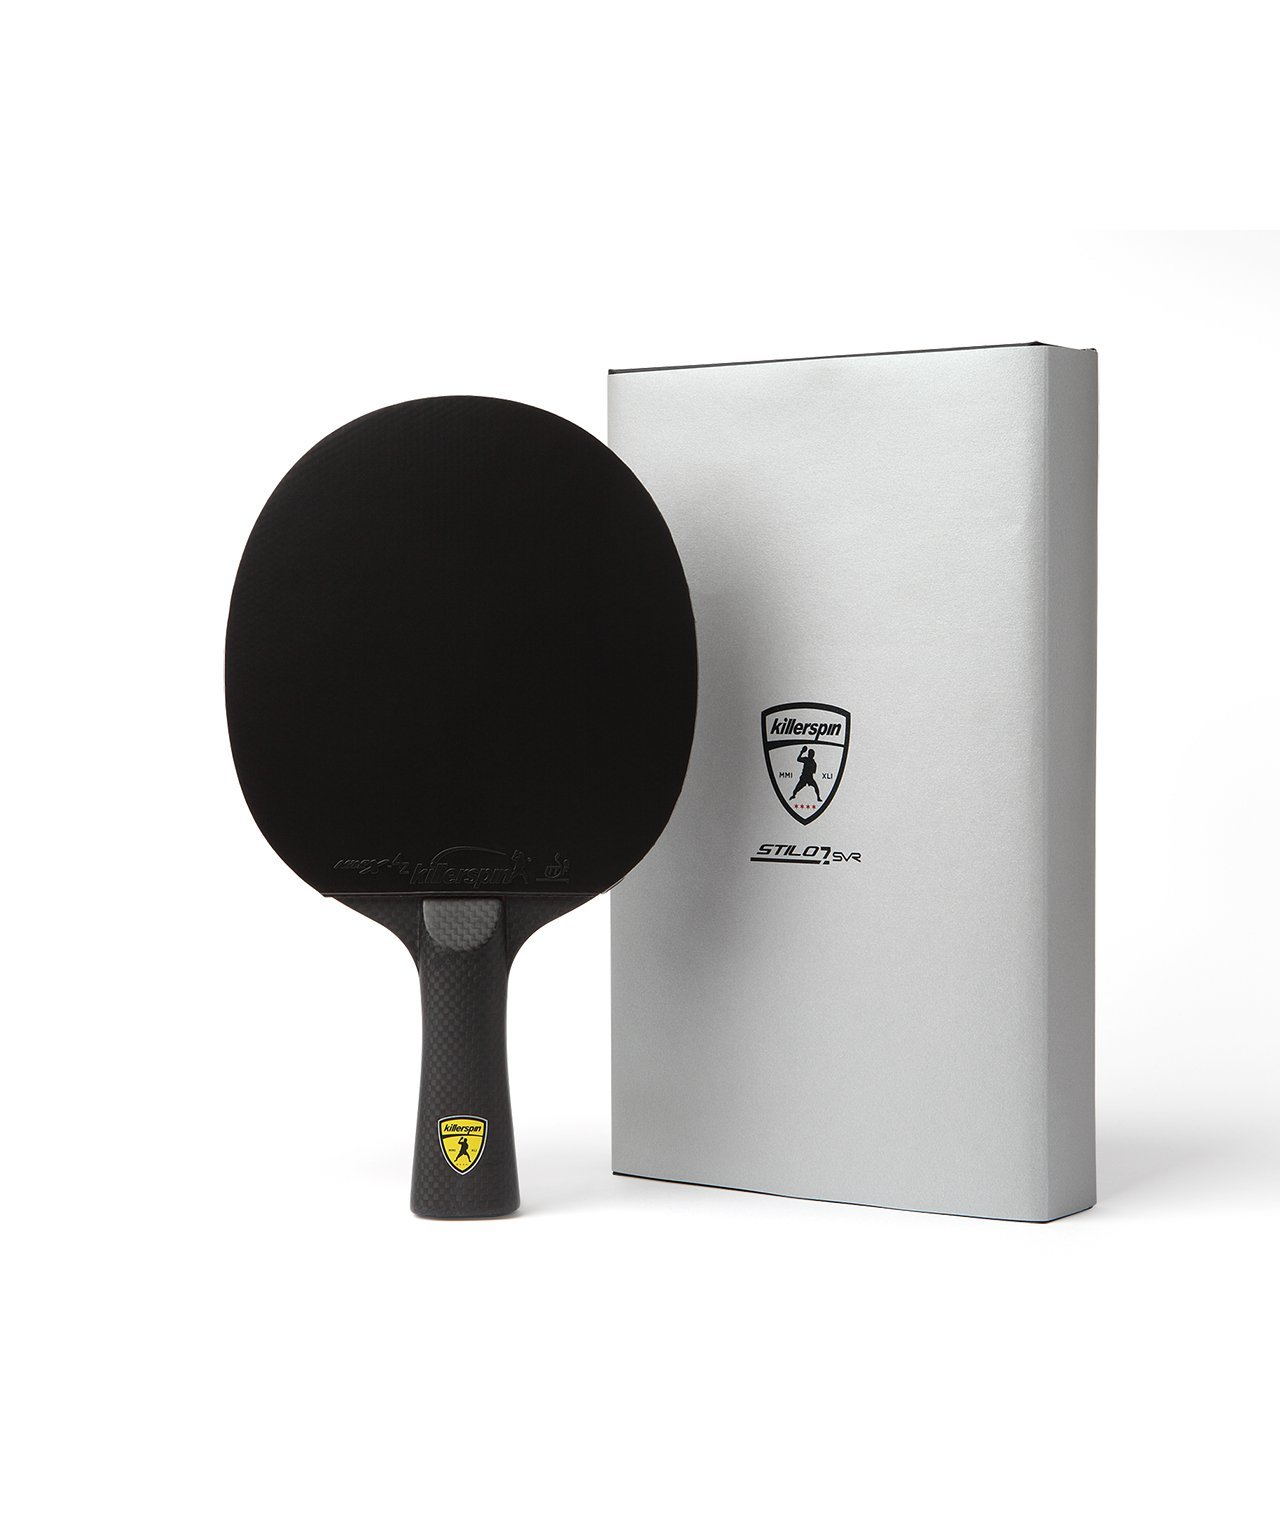 Ping pong paddle for best performance